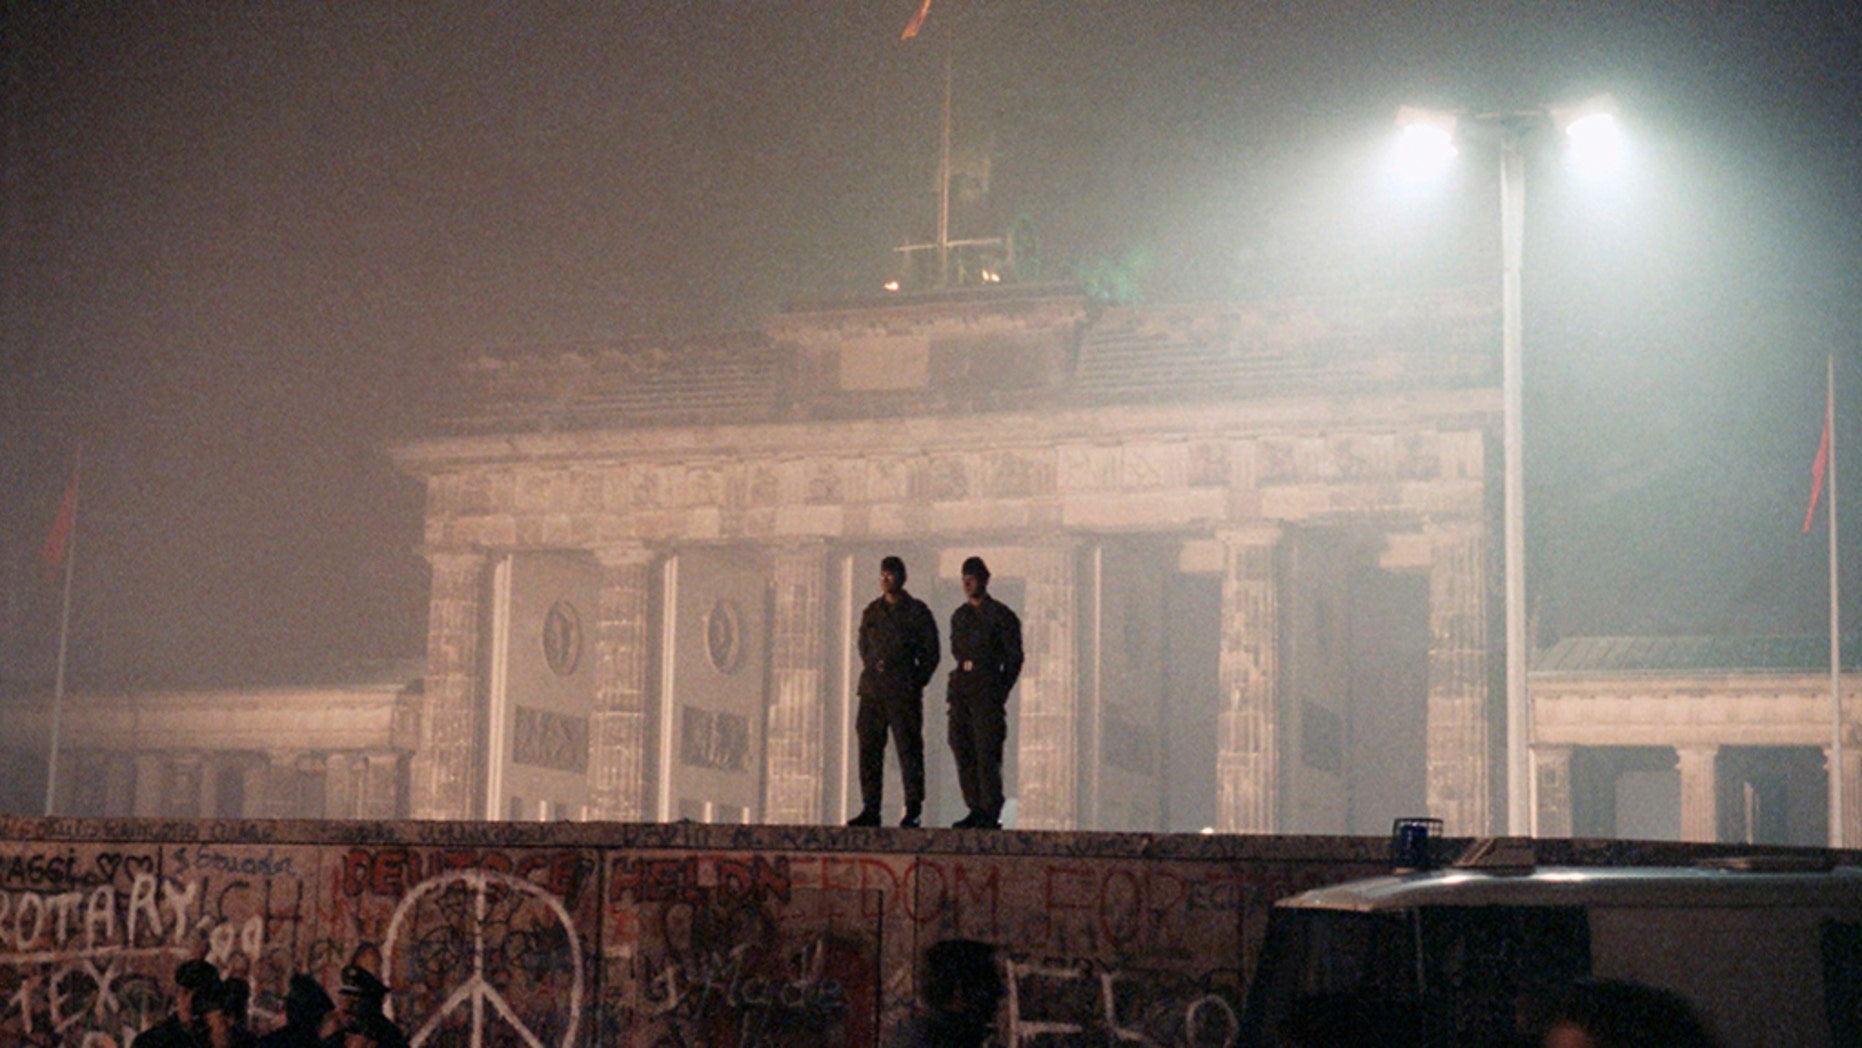 In this November 1989 file photo, two East German border guards patrolled atop the Berlin Wall with the illuminated Brandenburg Gate in the background.